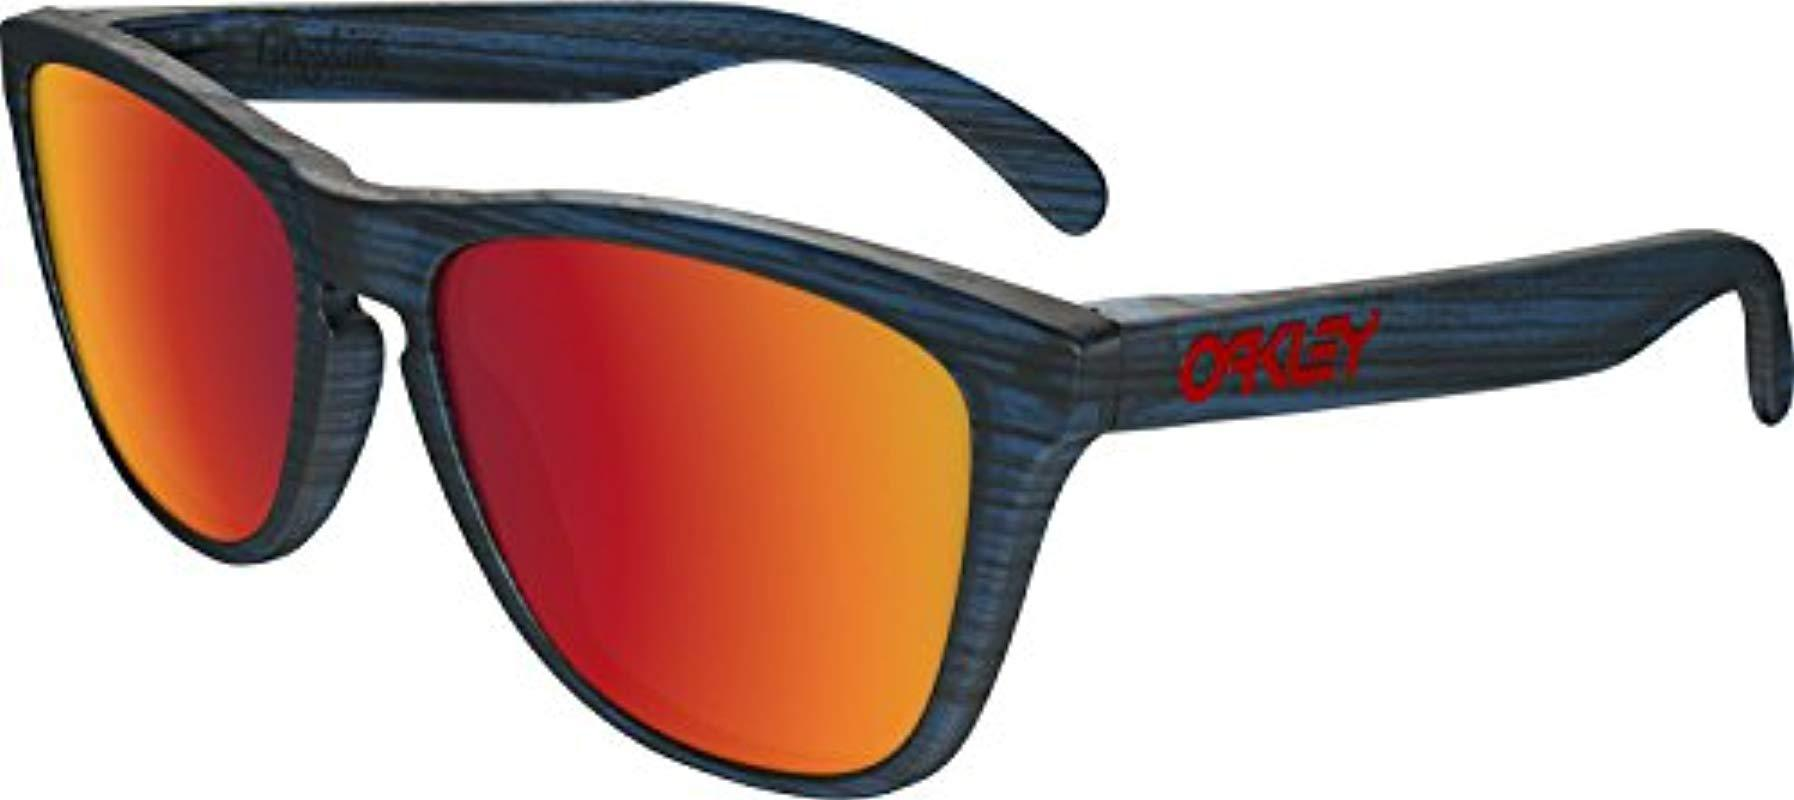 6c0e8e251de Lyst - Oakley Frogskins 009013 Wayfarer Sunglasses in Blue for Men ...